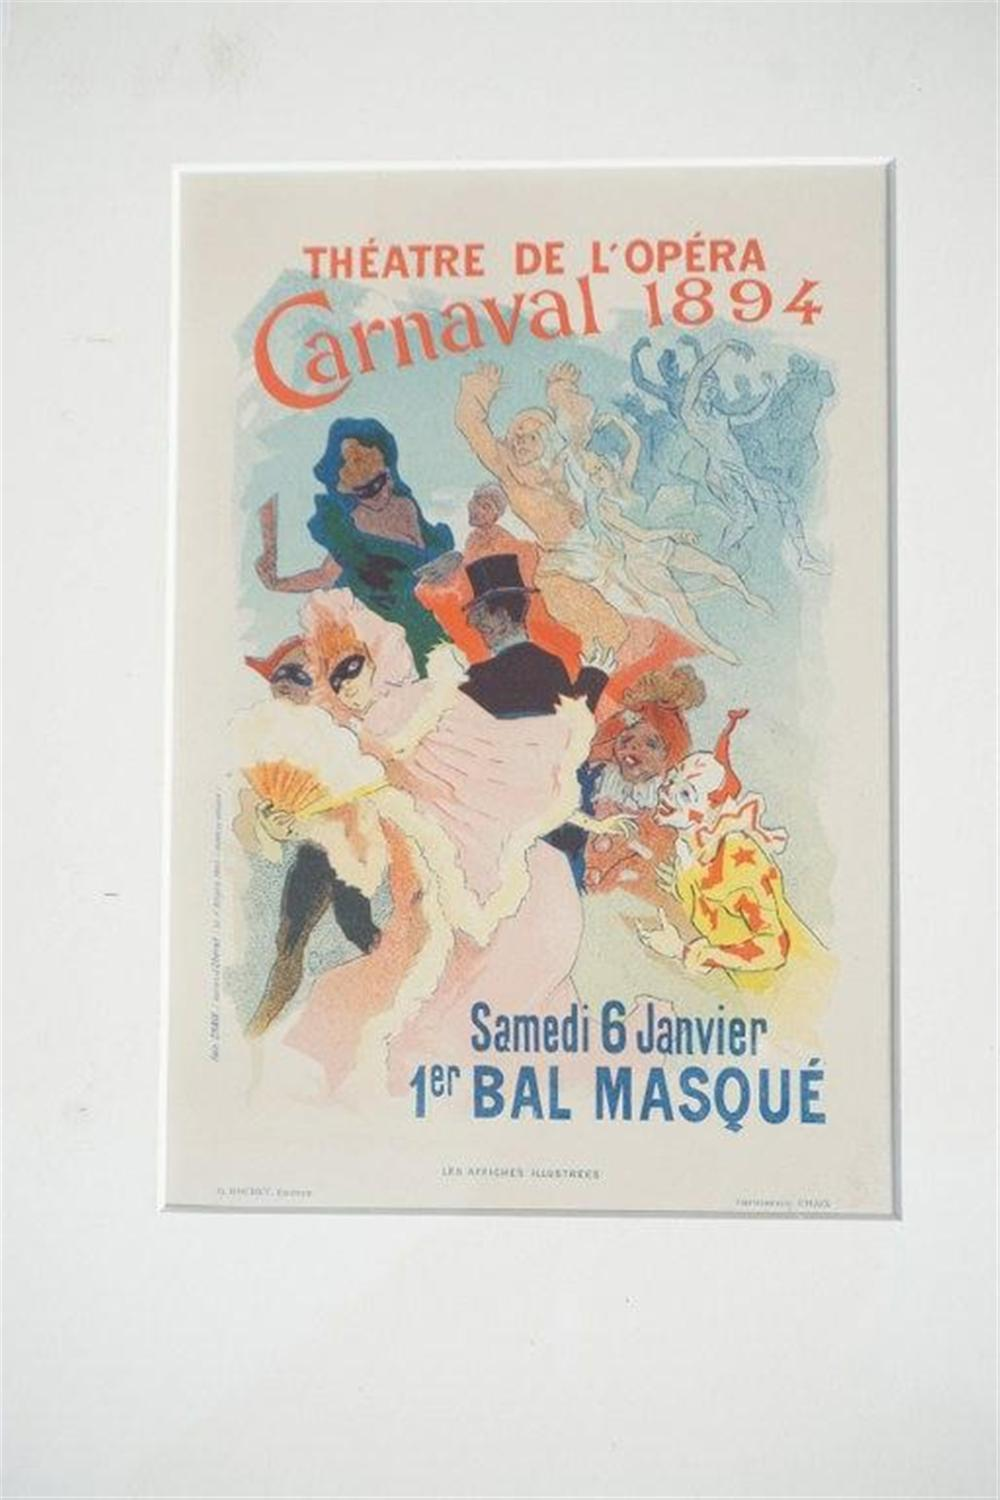 "1896 CHERET THEATRE DE L' OPERA CARNAVAL 1894, STONE LITHO POSTER, SHEET SIZE 8 3/4"" X 12 1/4"", EXCELLENT CONDITION, SHRINK WRAPPED AND MATTED. FROM RETIRED DEALERS COLLECTION."